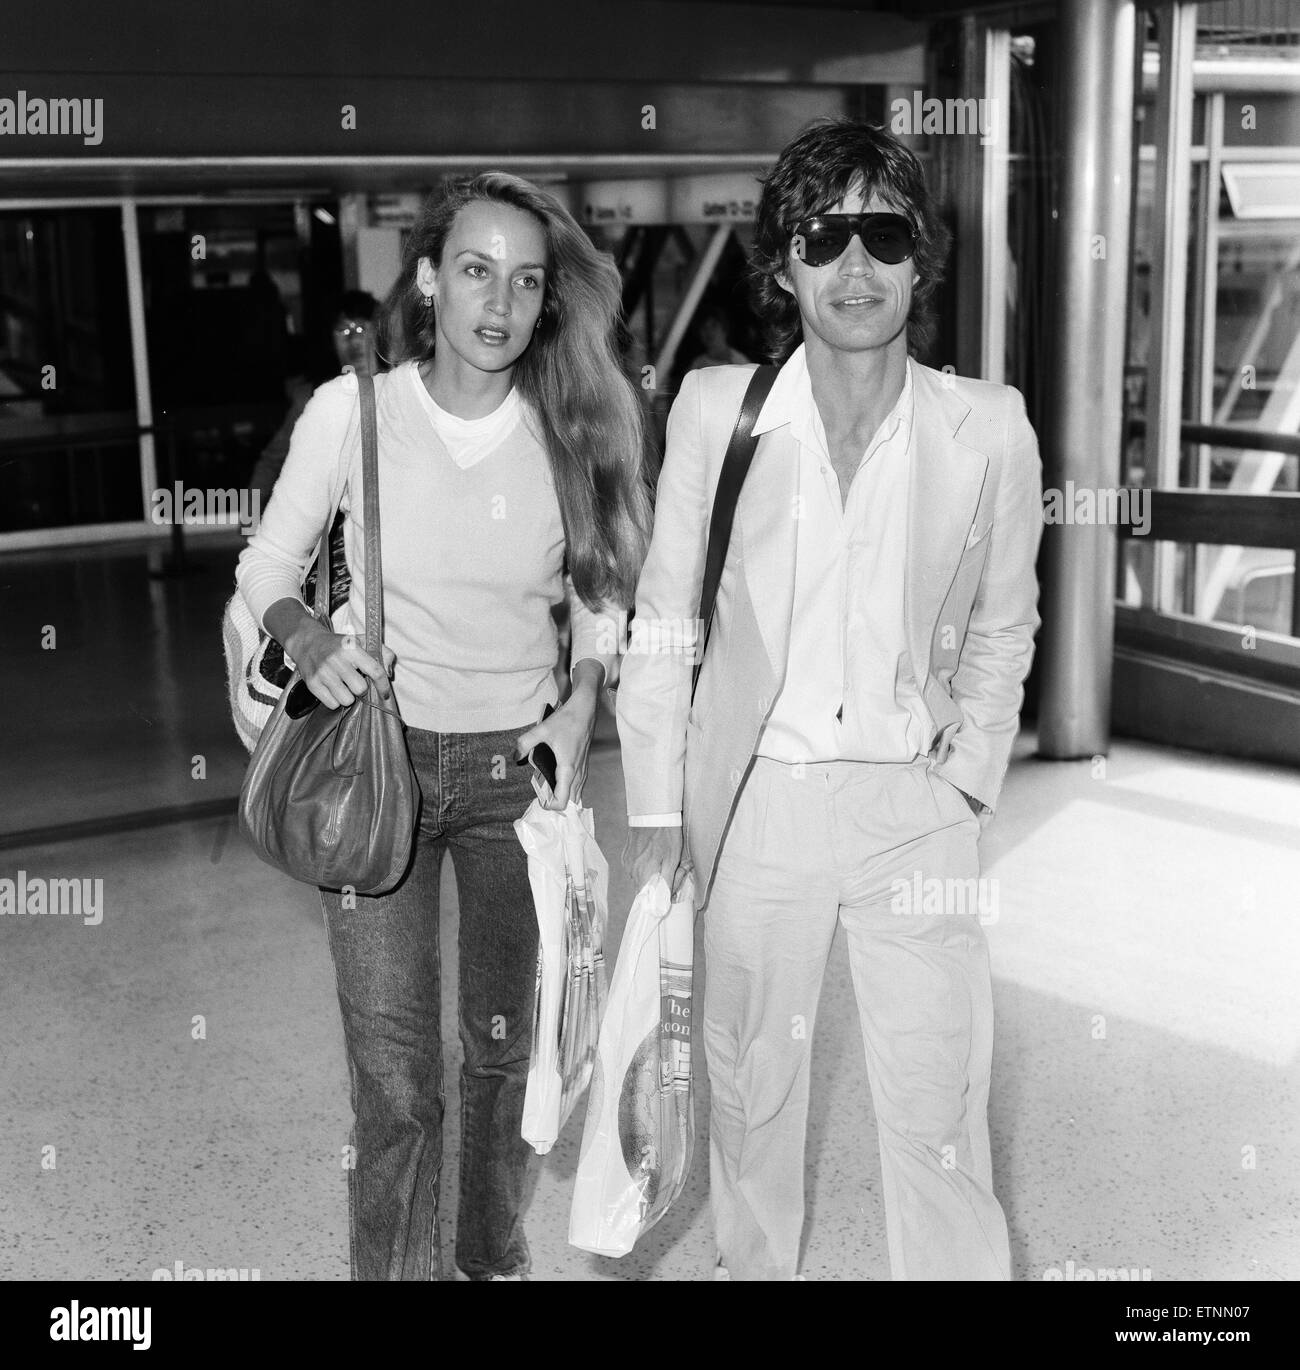 Mick Jagger and girlfriend, model, Jerry Hall, pictured at London Heathrow Airport, departing for India, 28th July Stock Photo